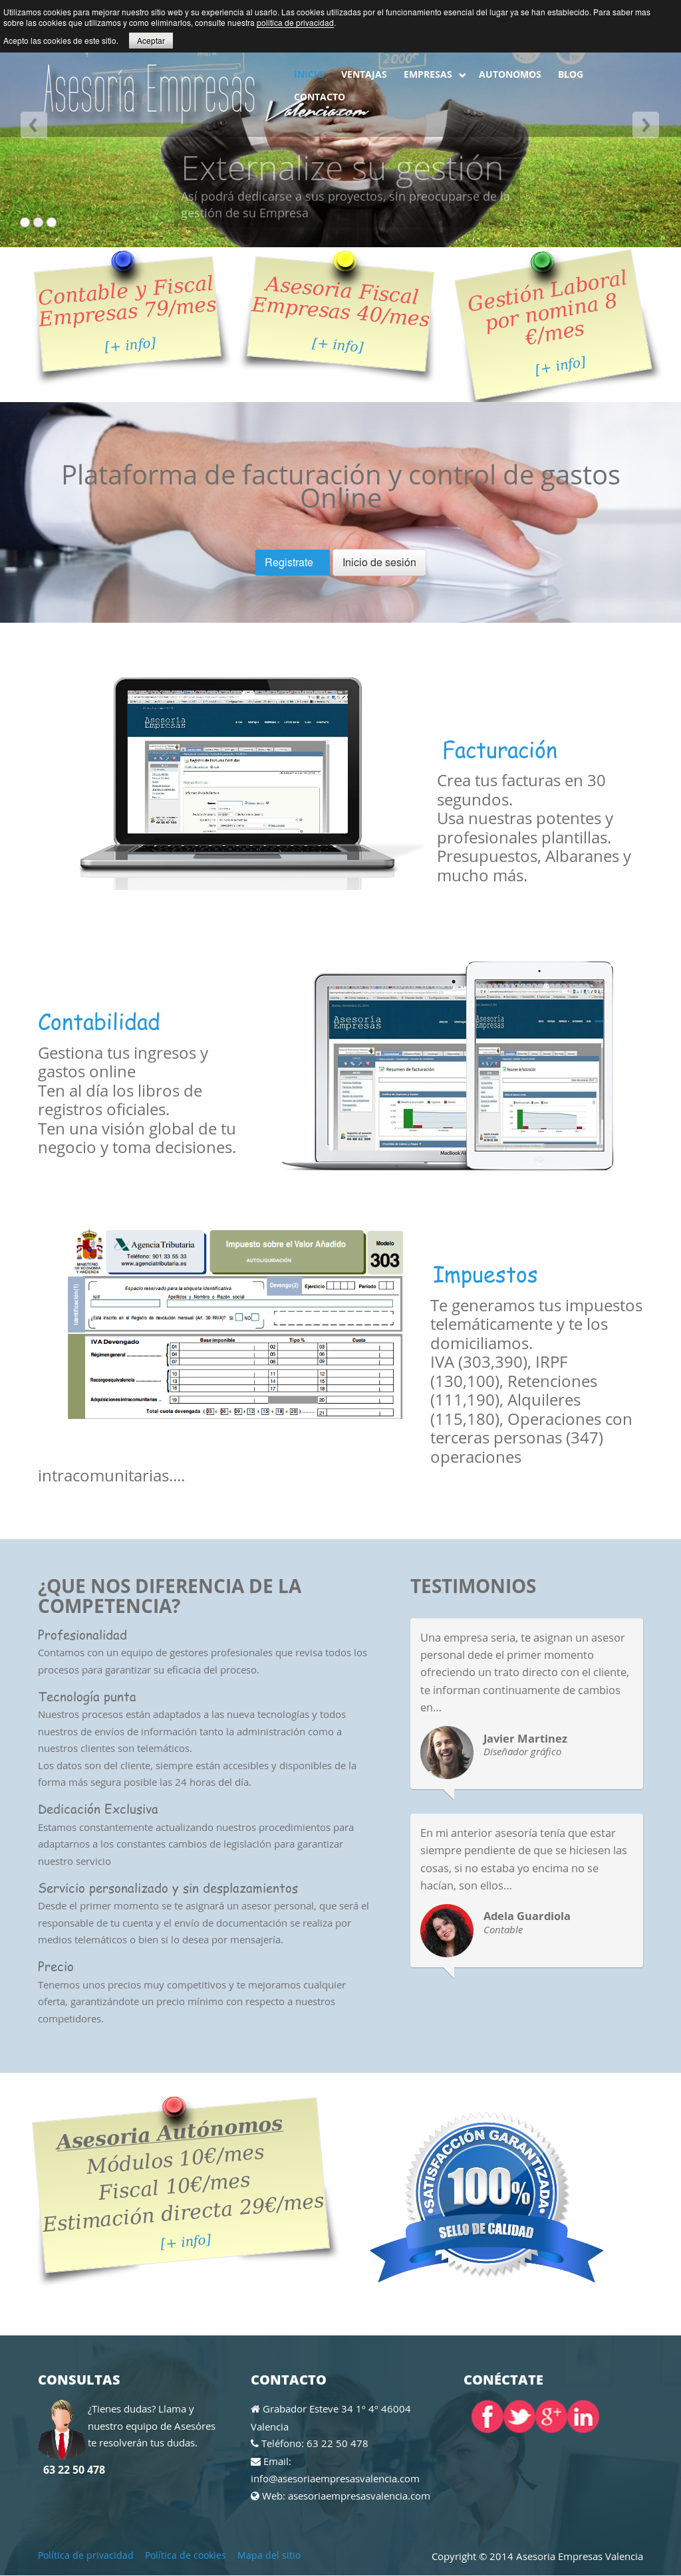 Asesoria Empresas Valencia Competitors, Revenue and Employees ...